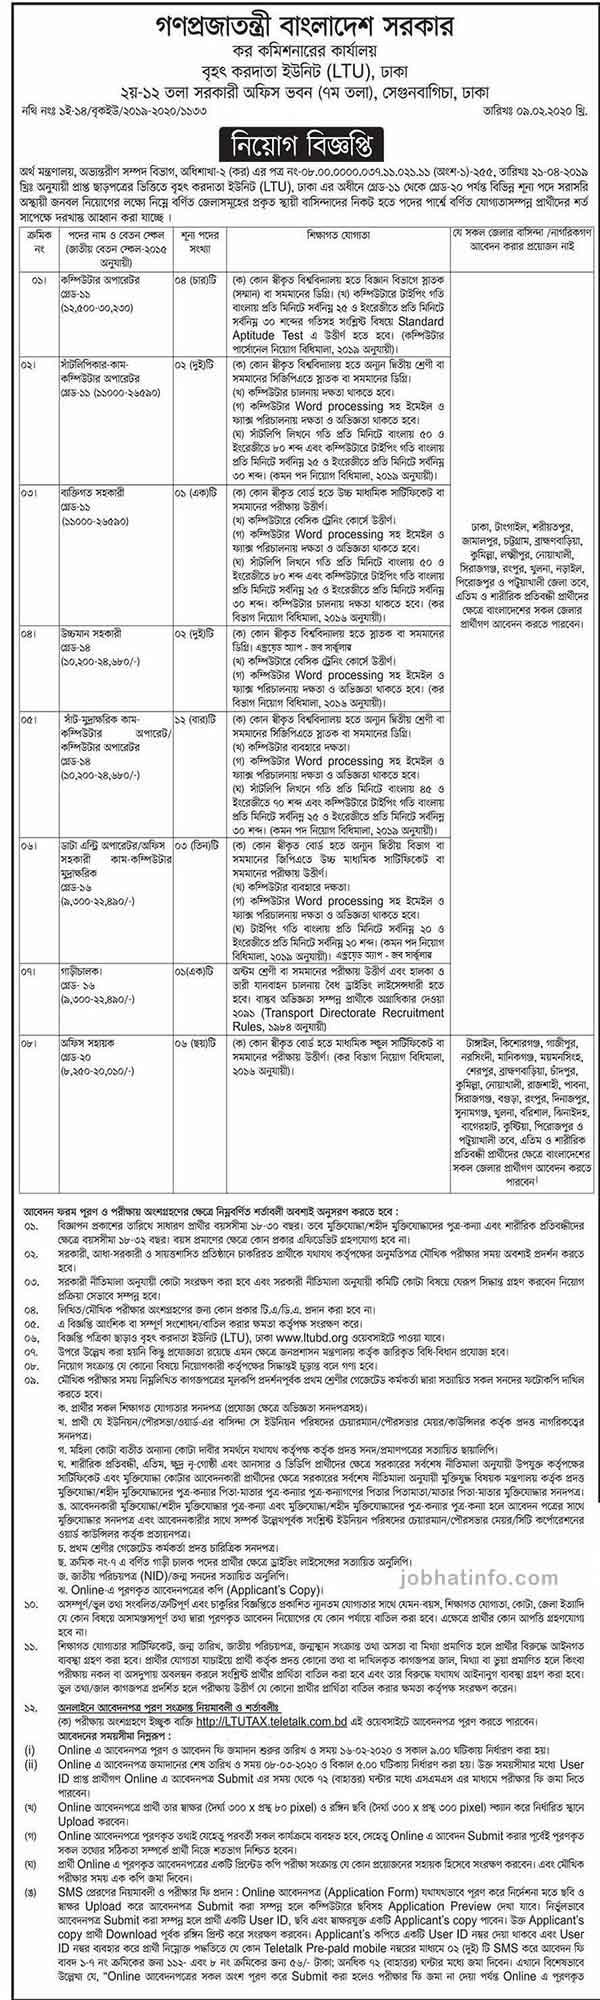 Tax Commissioner's Office Job Circular-2020 1